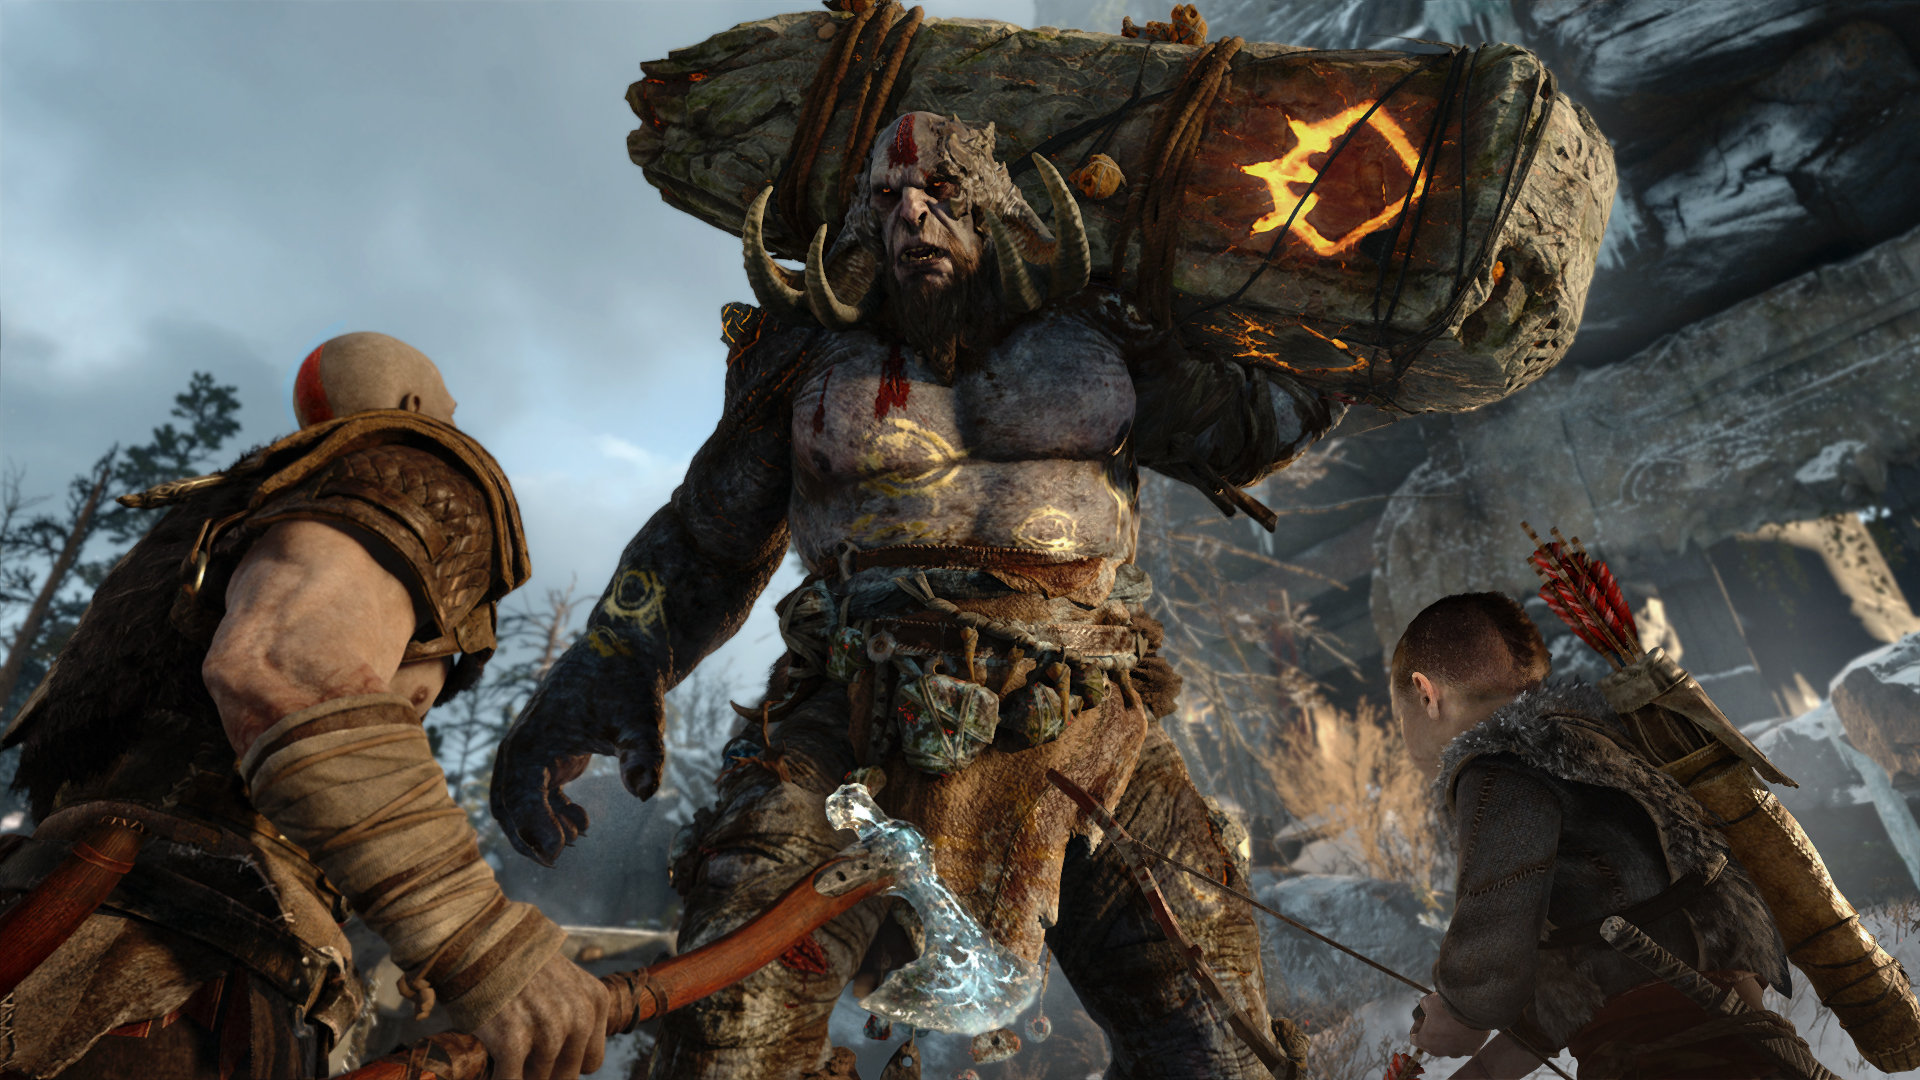 god of war features performance mode on playstation 4 pro; gets new